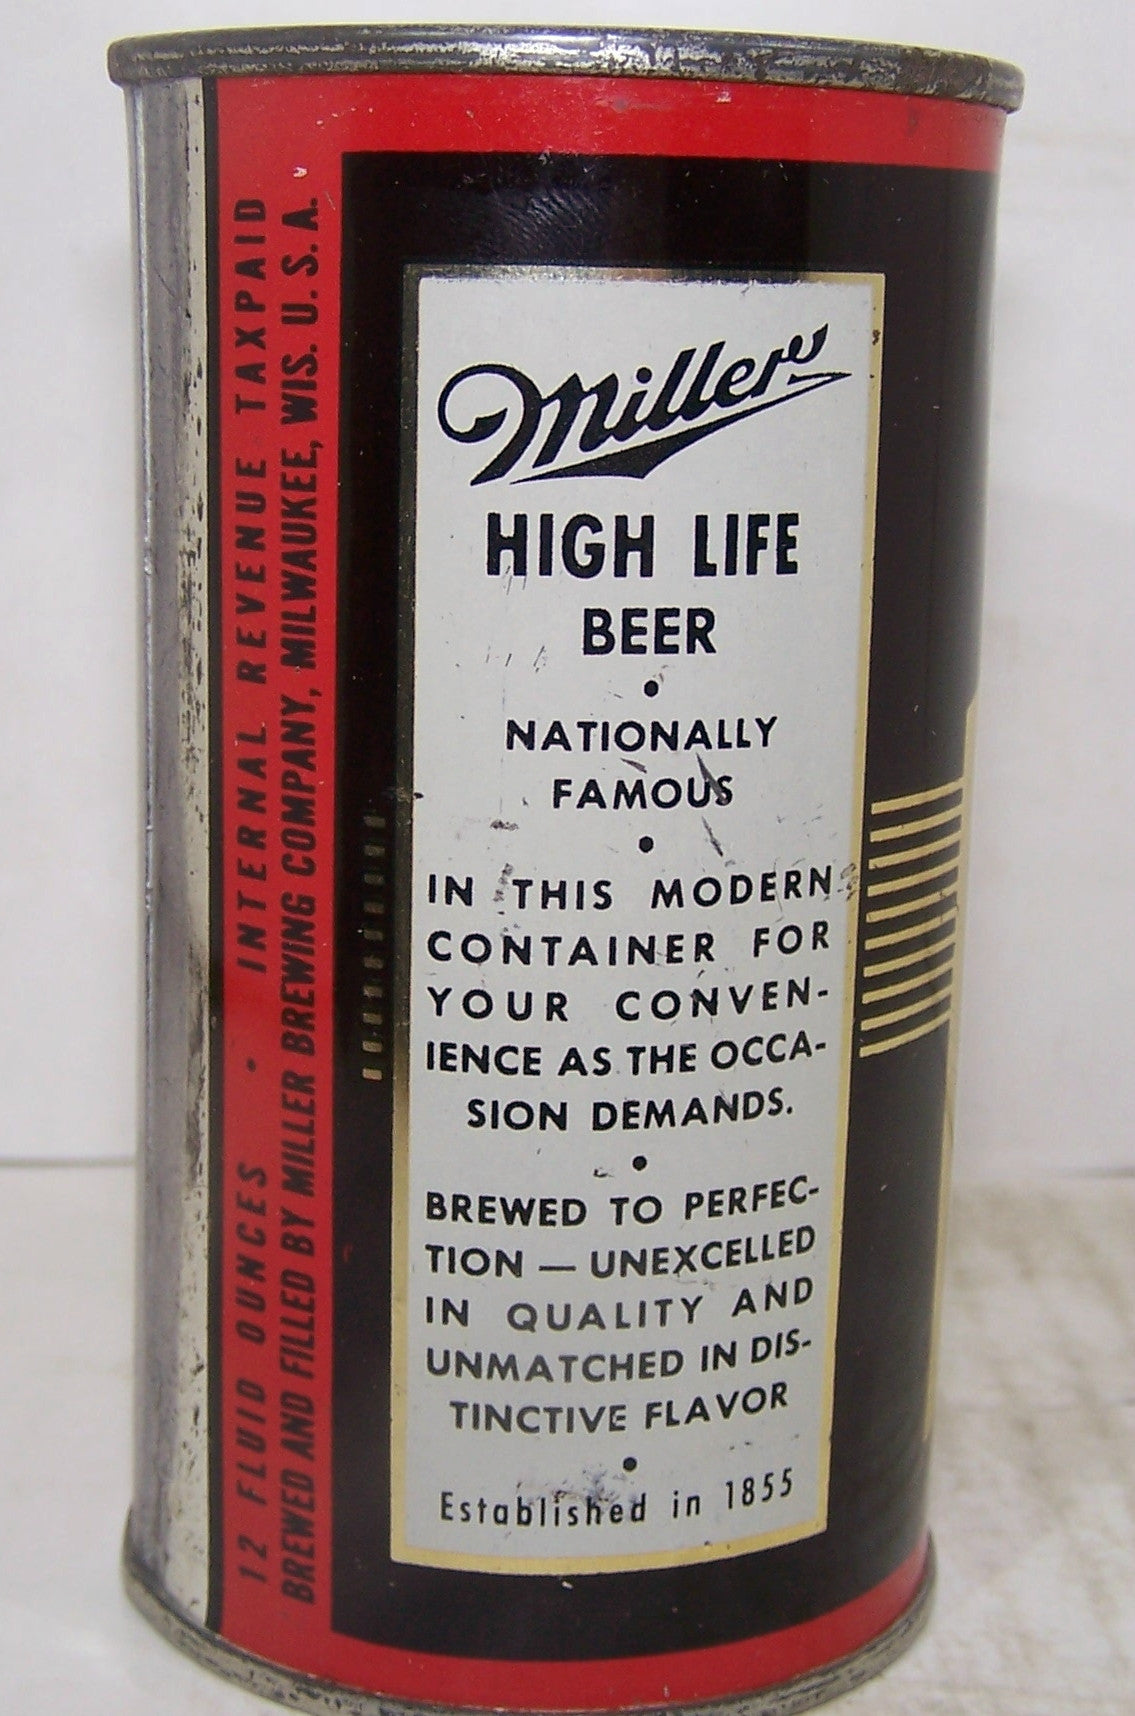 Miller High Life Beer, USBC 99-32, I.R.T.P Grade 1/1+ Sold on 4/30/15